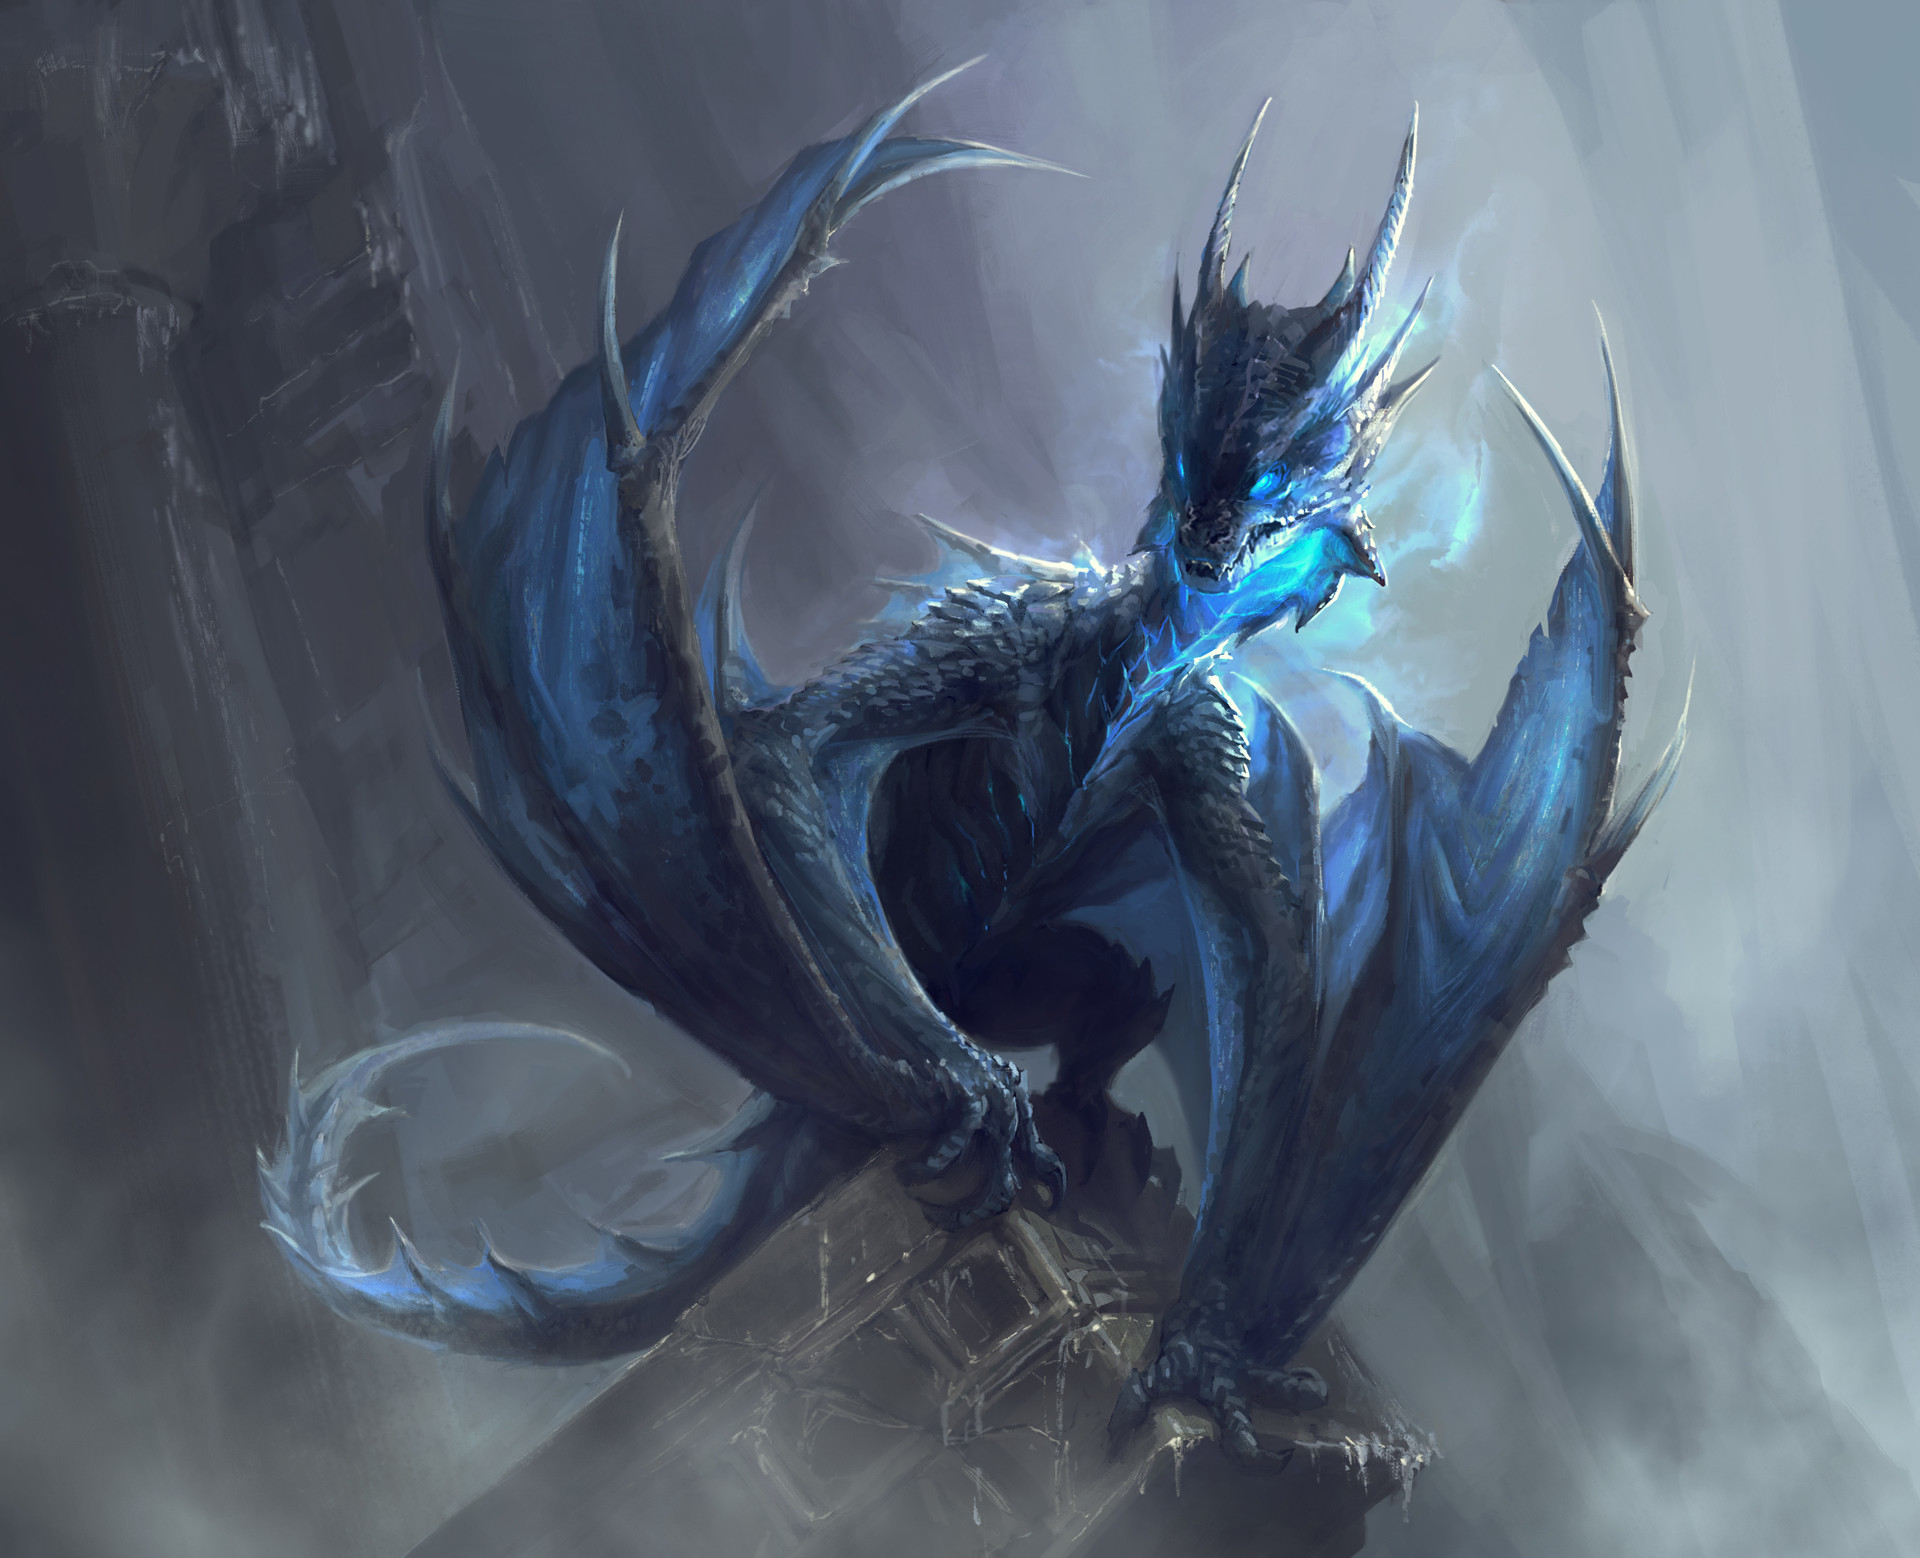 Frost Dragon: Frost Dragon, Jonathan Tiong